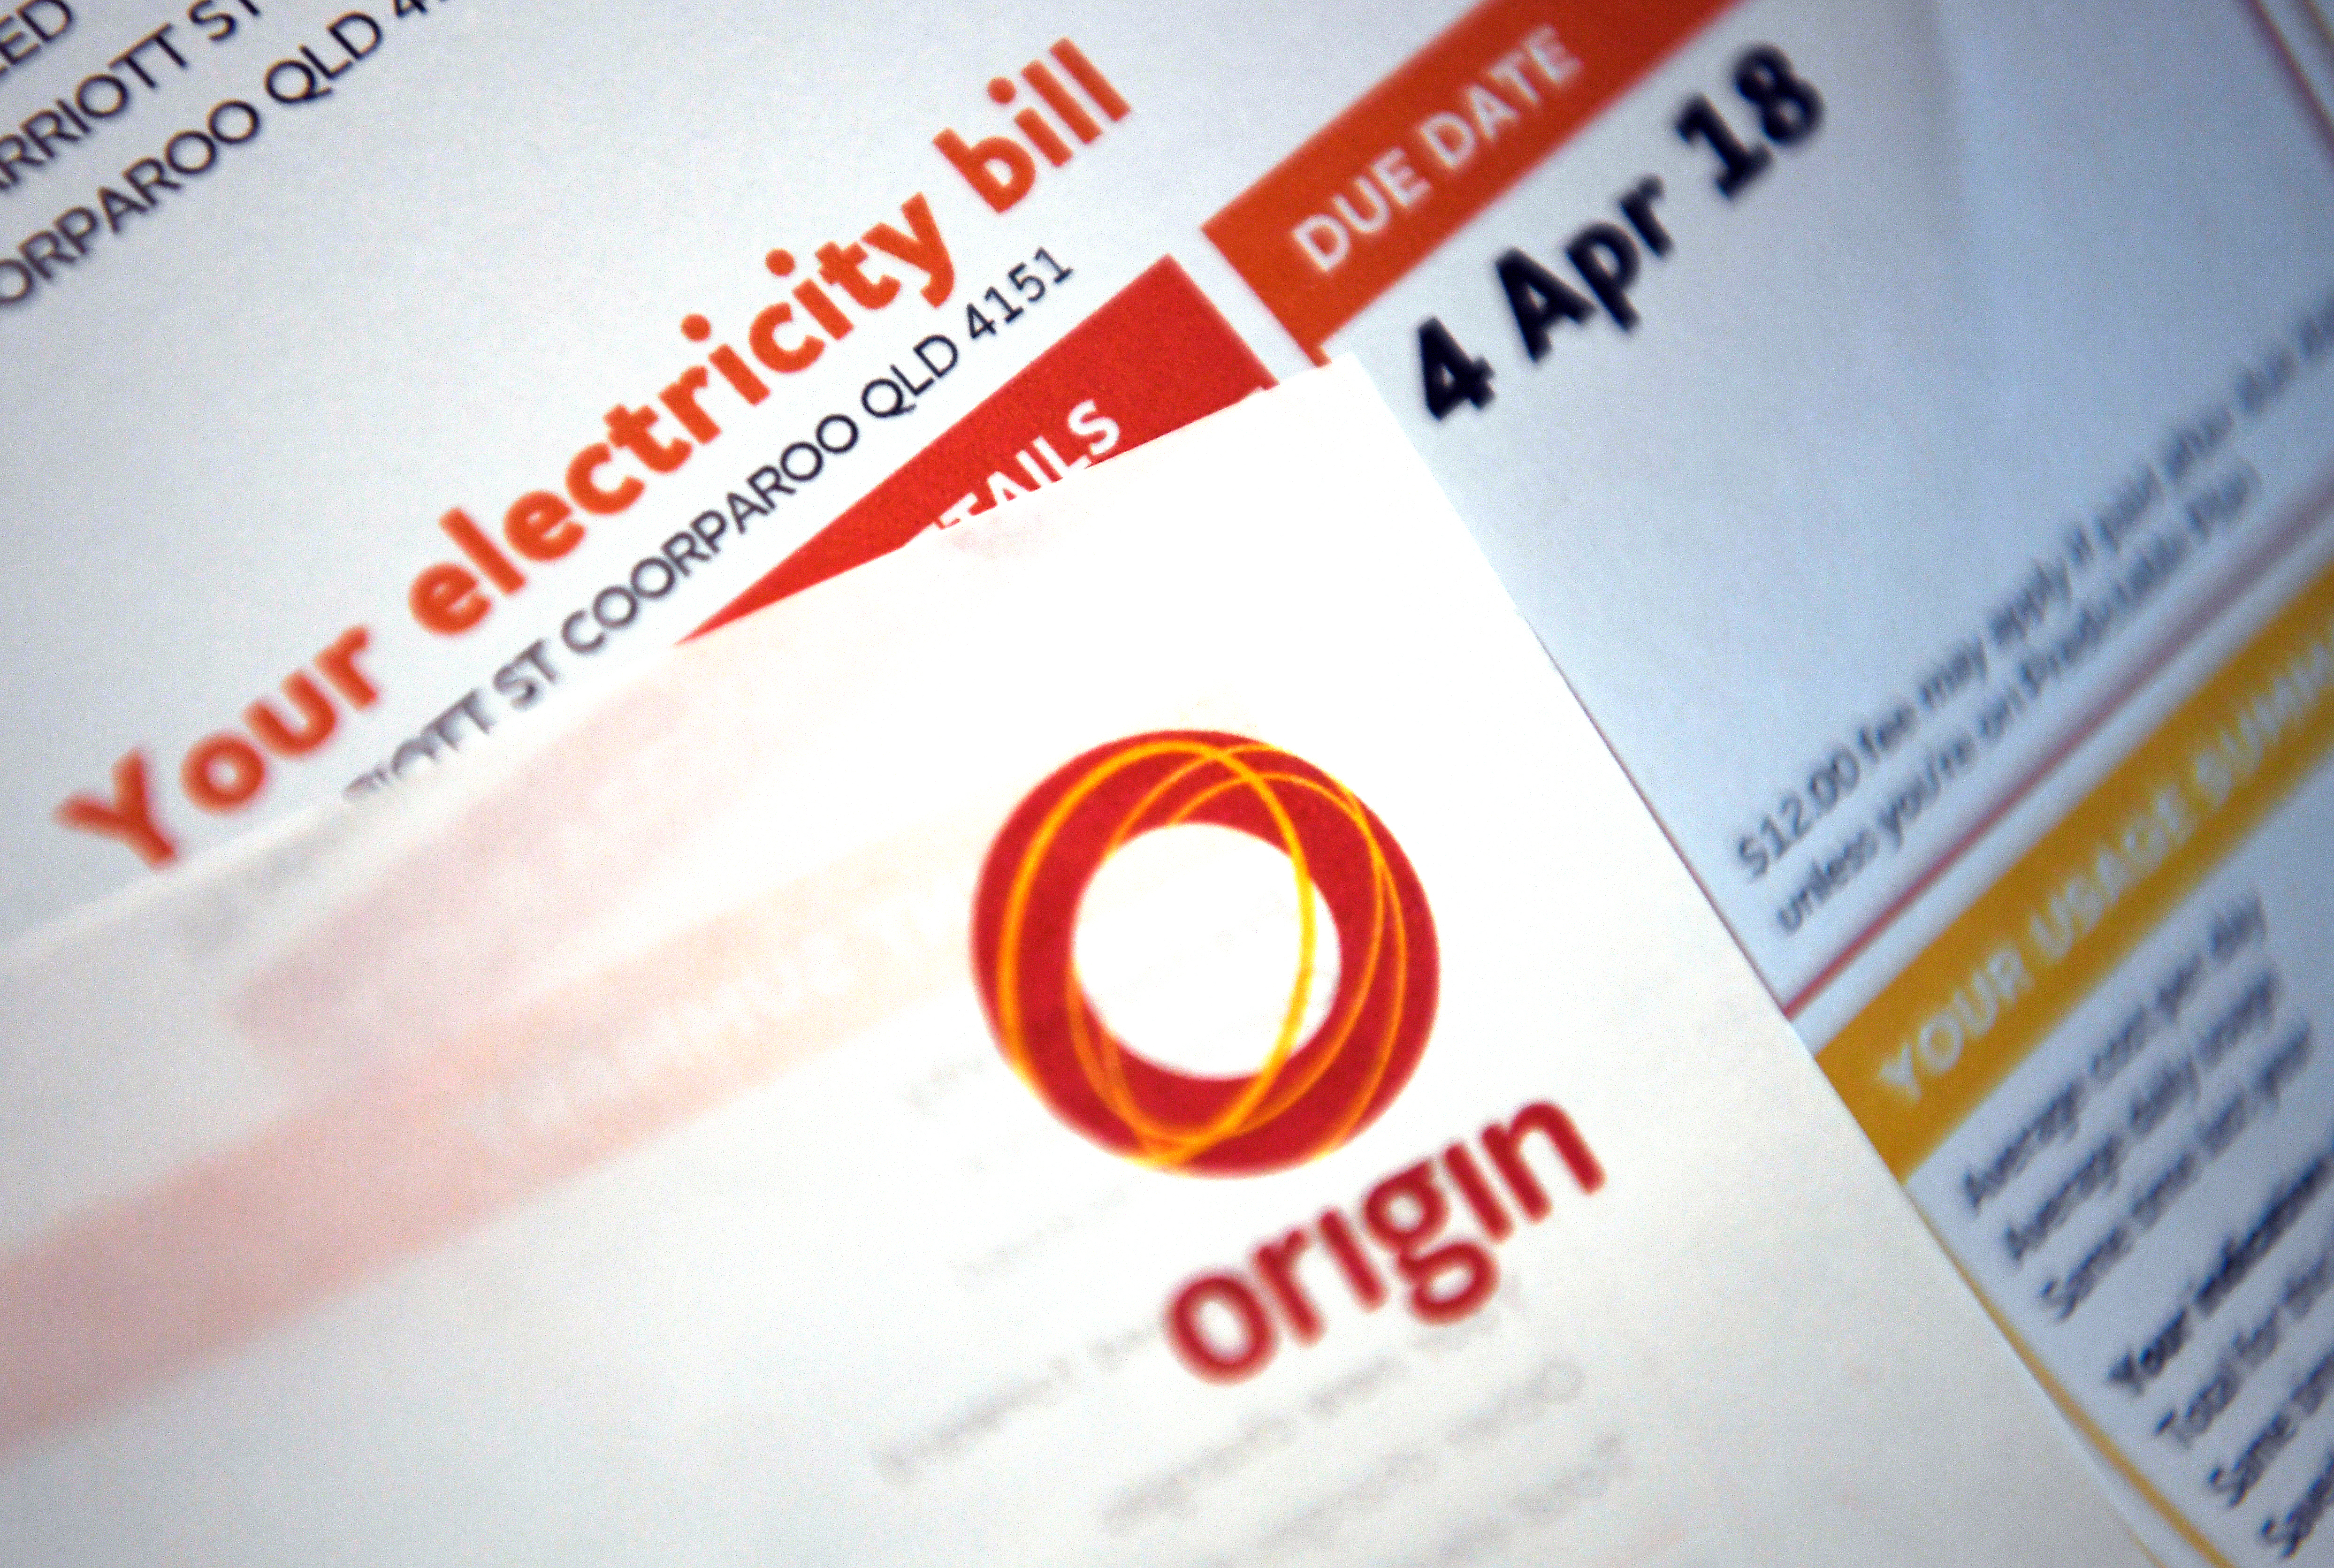 9Saver has secured massive discounts from Origin Energy.